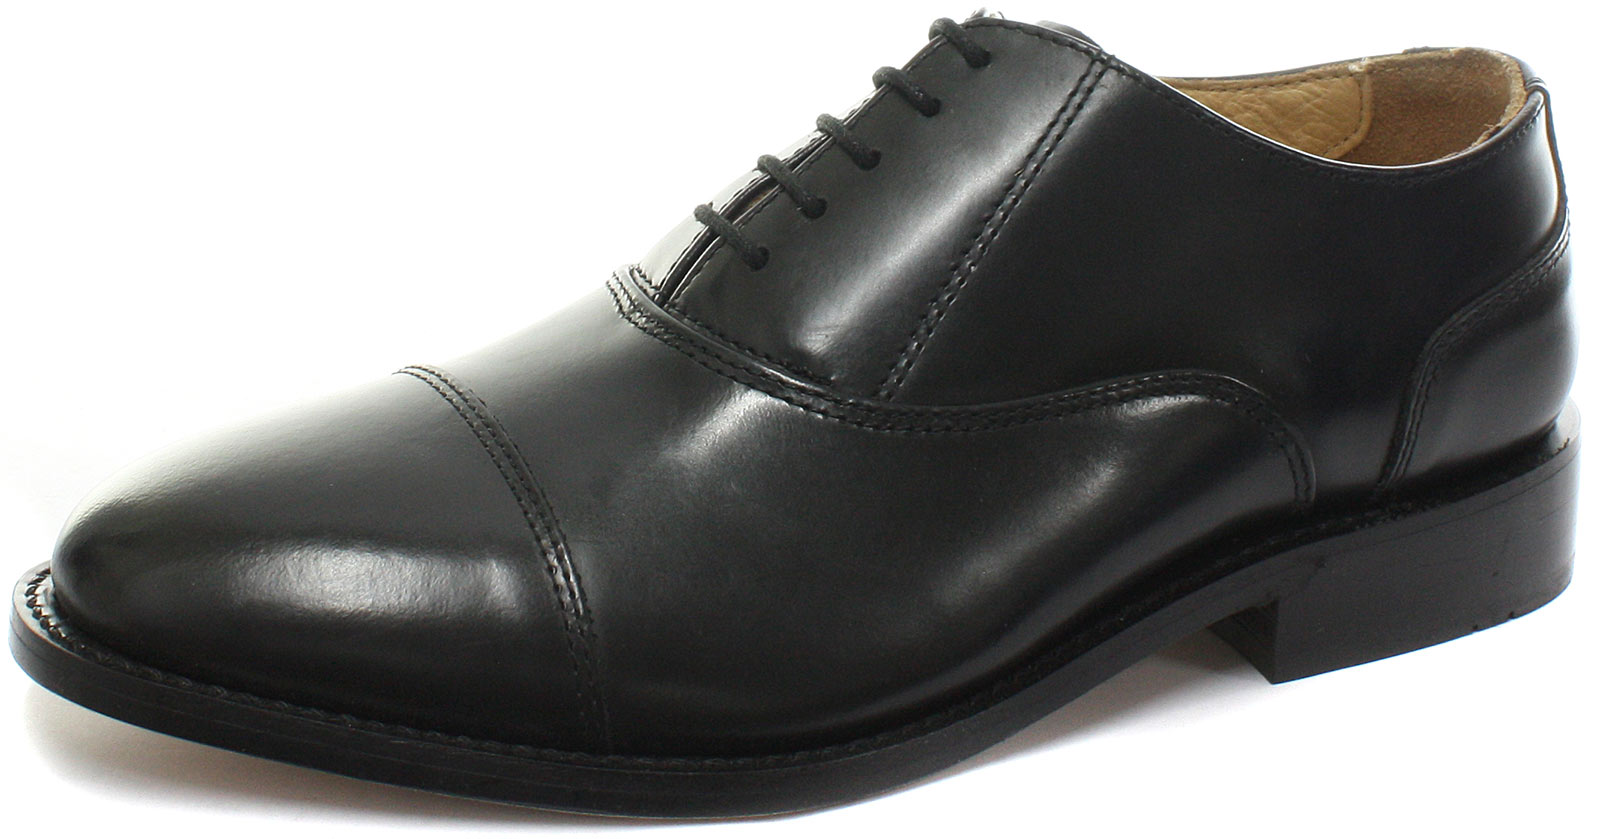 Kensington Classics Capped Oxford Black Mens Lace Up Shoes ALL SIZES